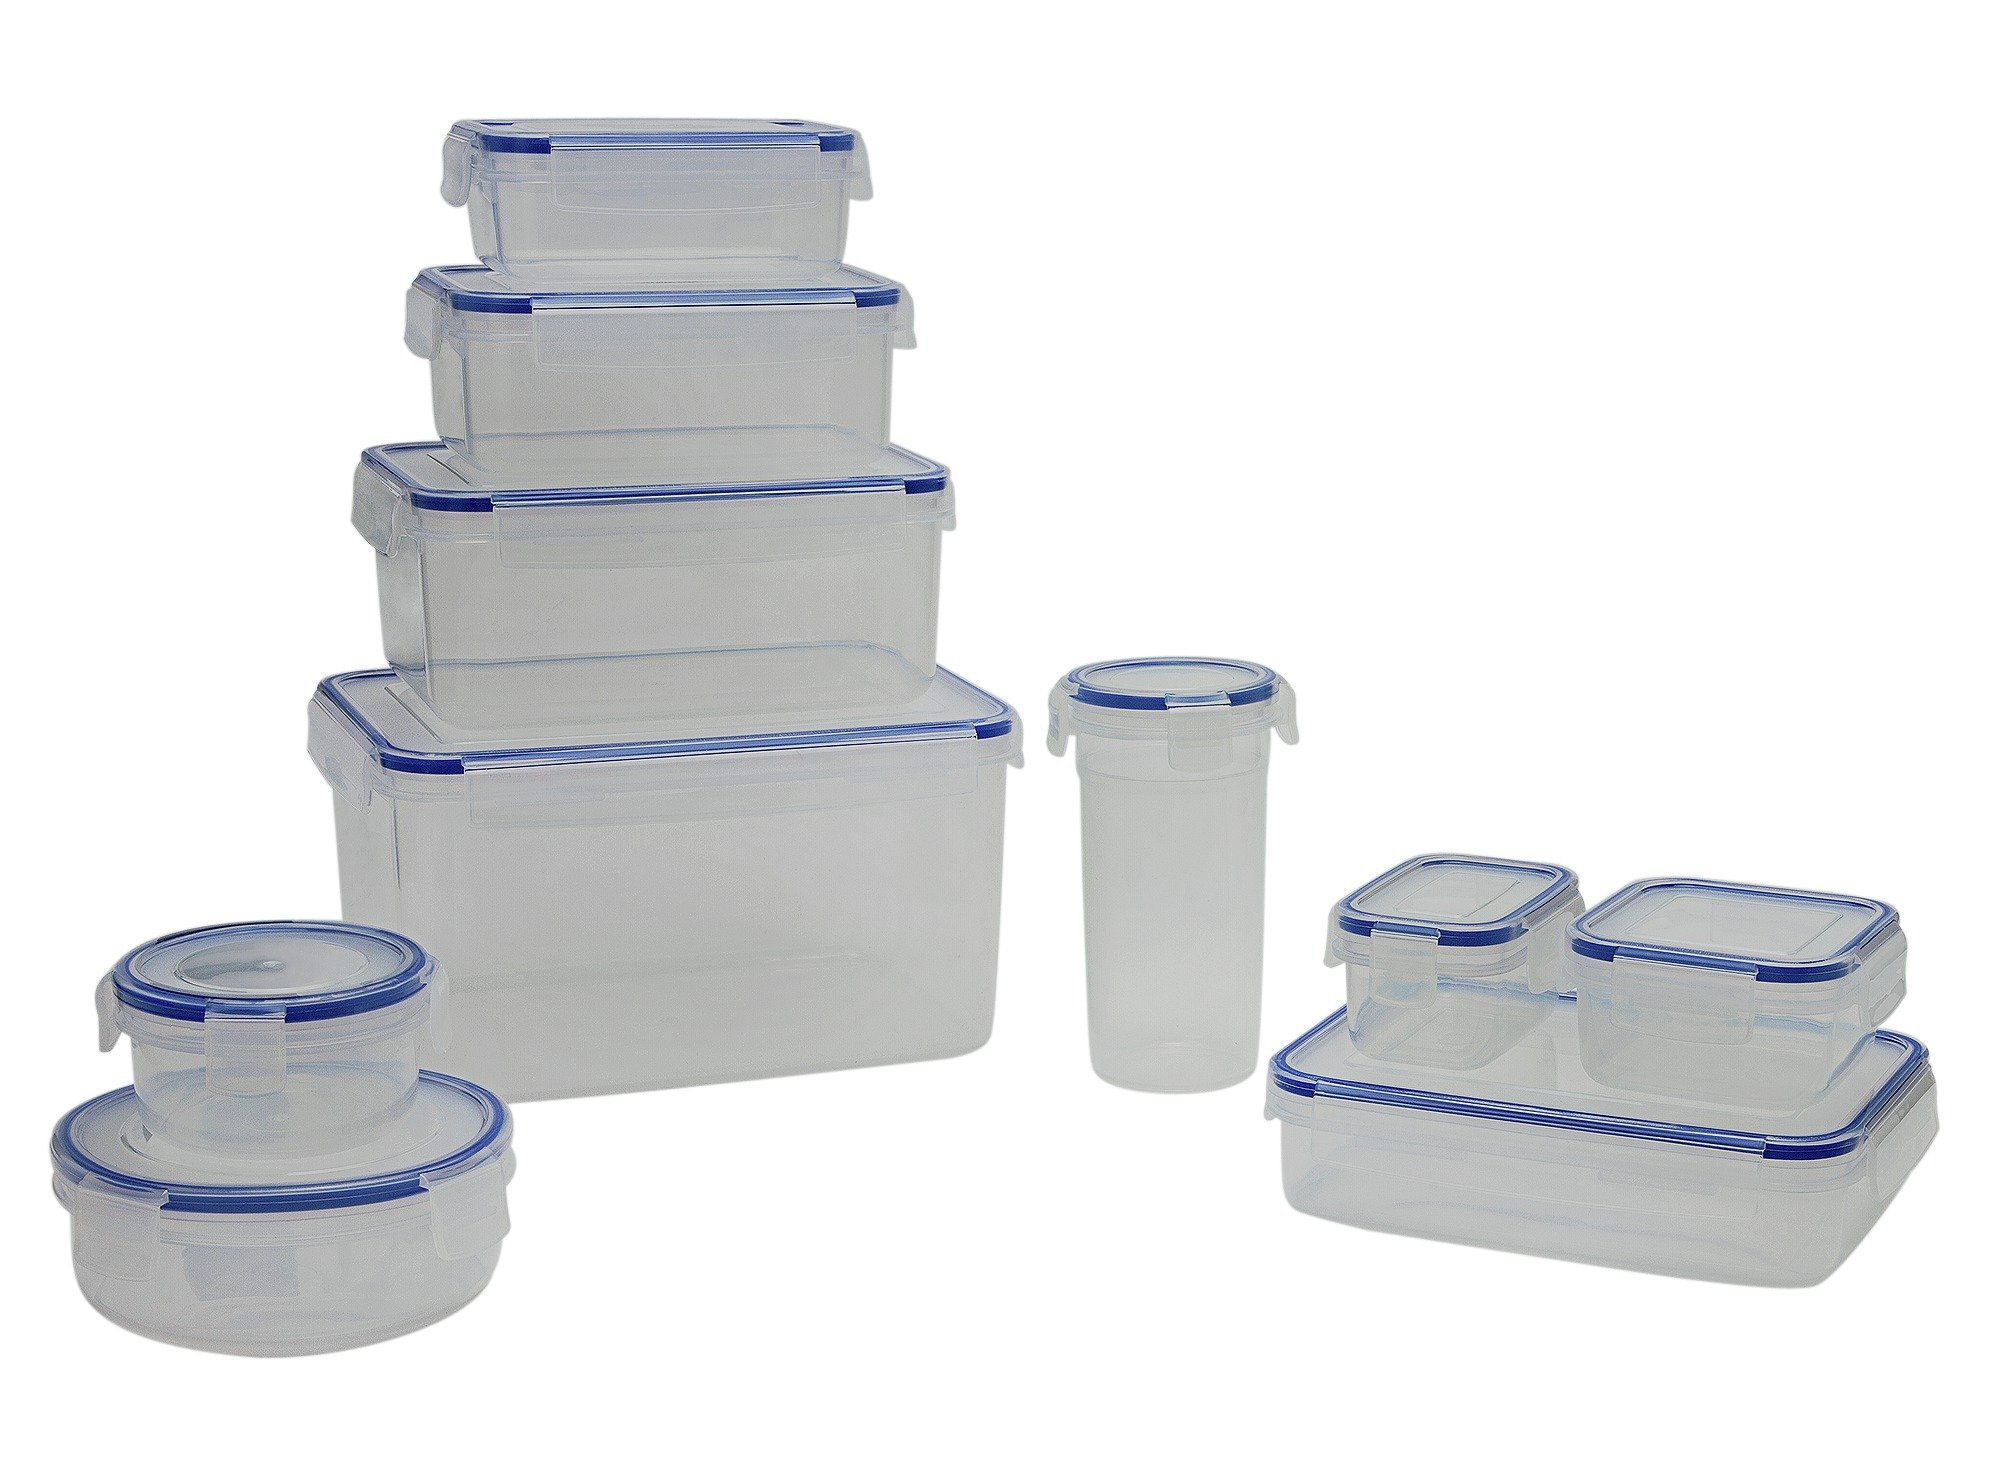 Image of Addis - 10 Piece Plastic Kitchen Storage Set